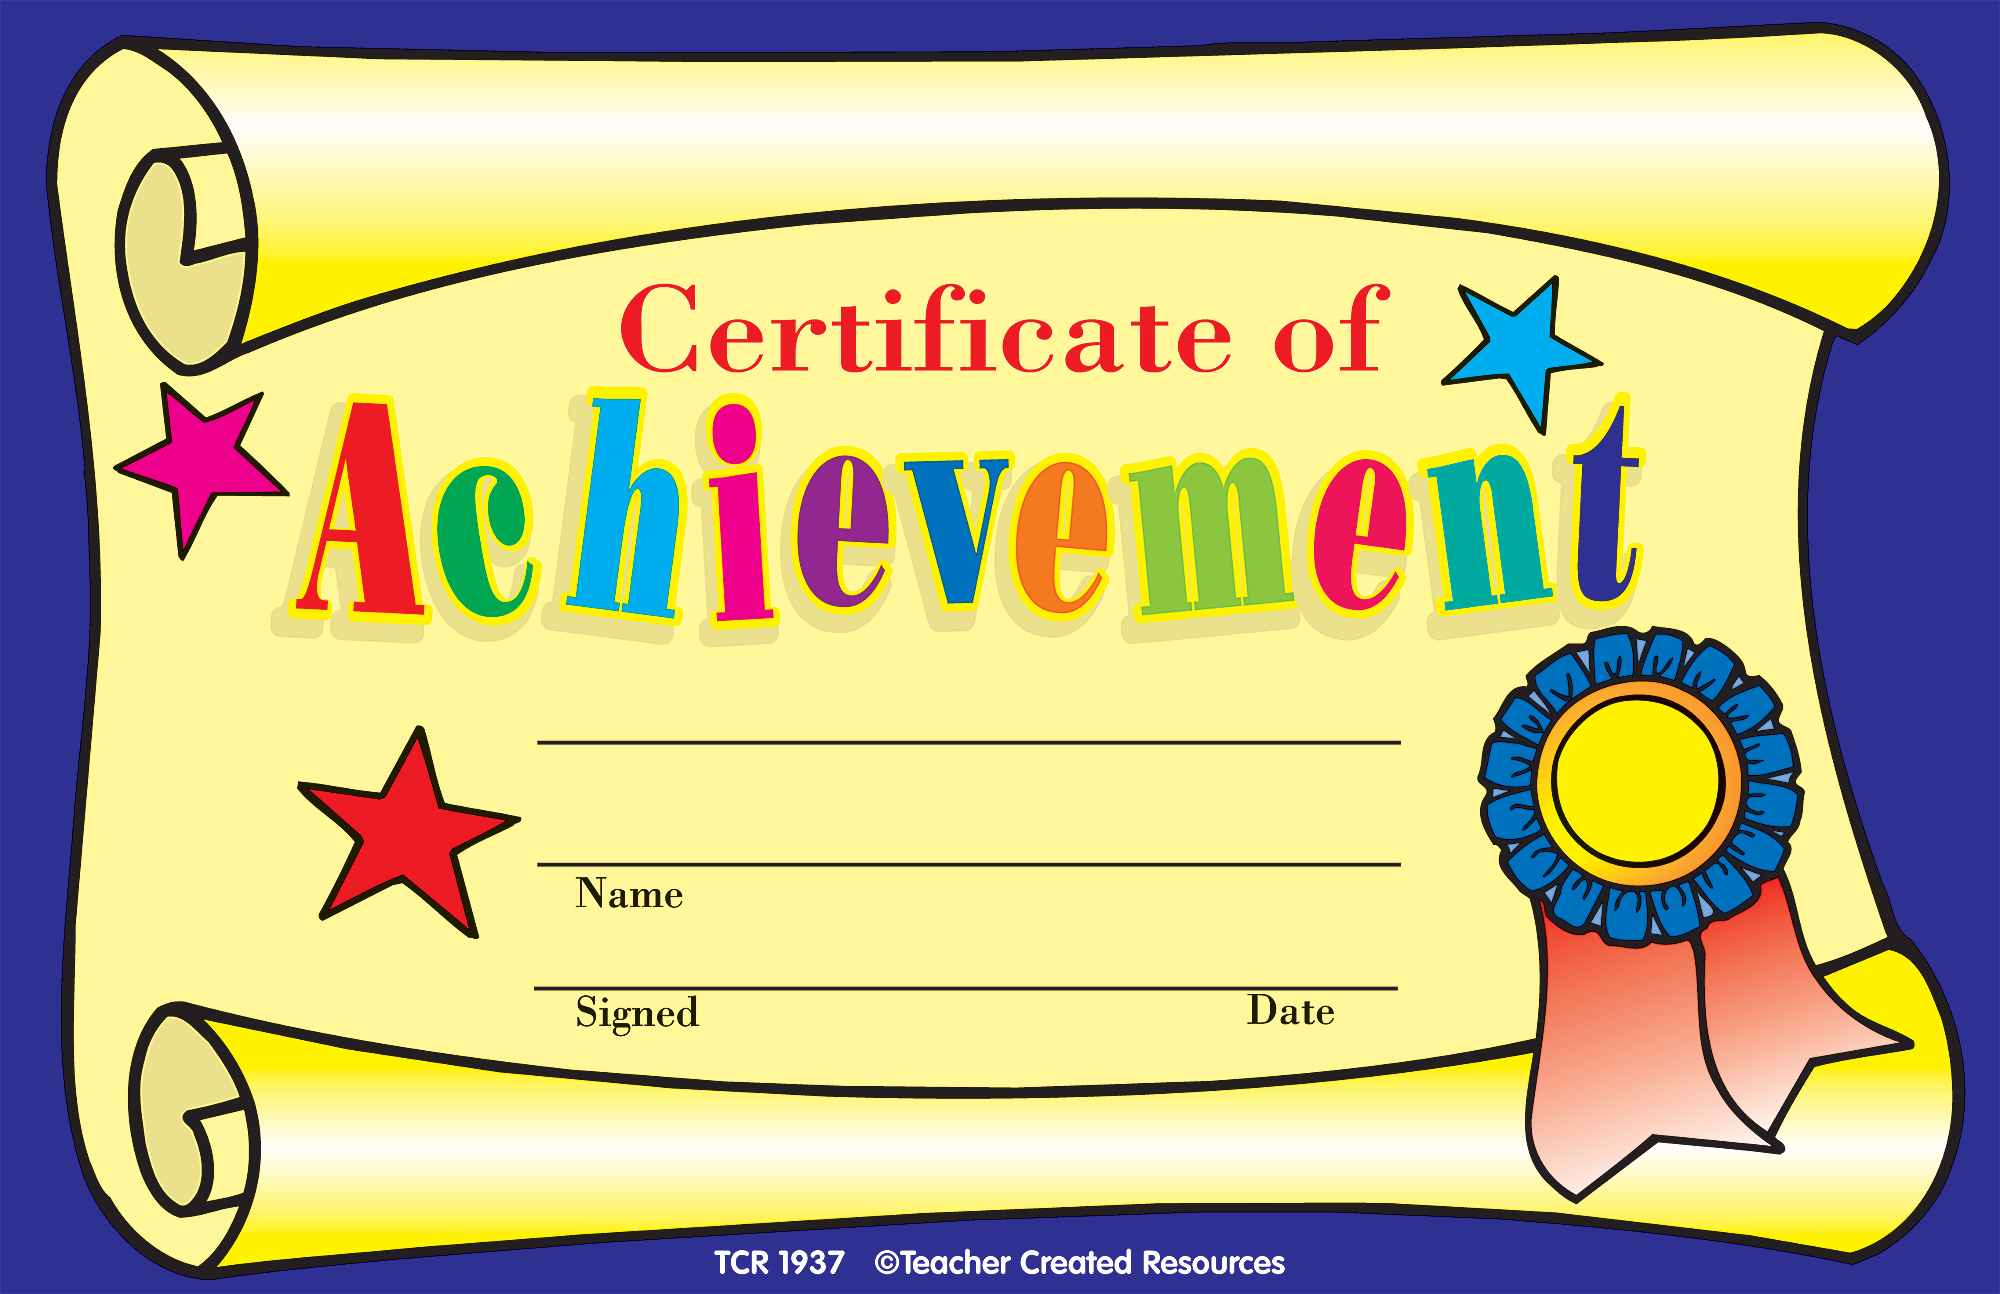 childrens certificate  Certificate of Achievement Awards - TCR1937 | Teacher Created ...